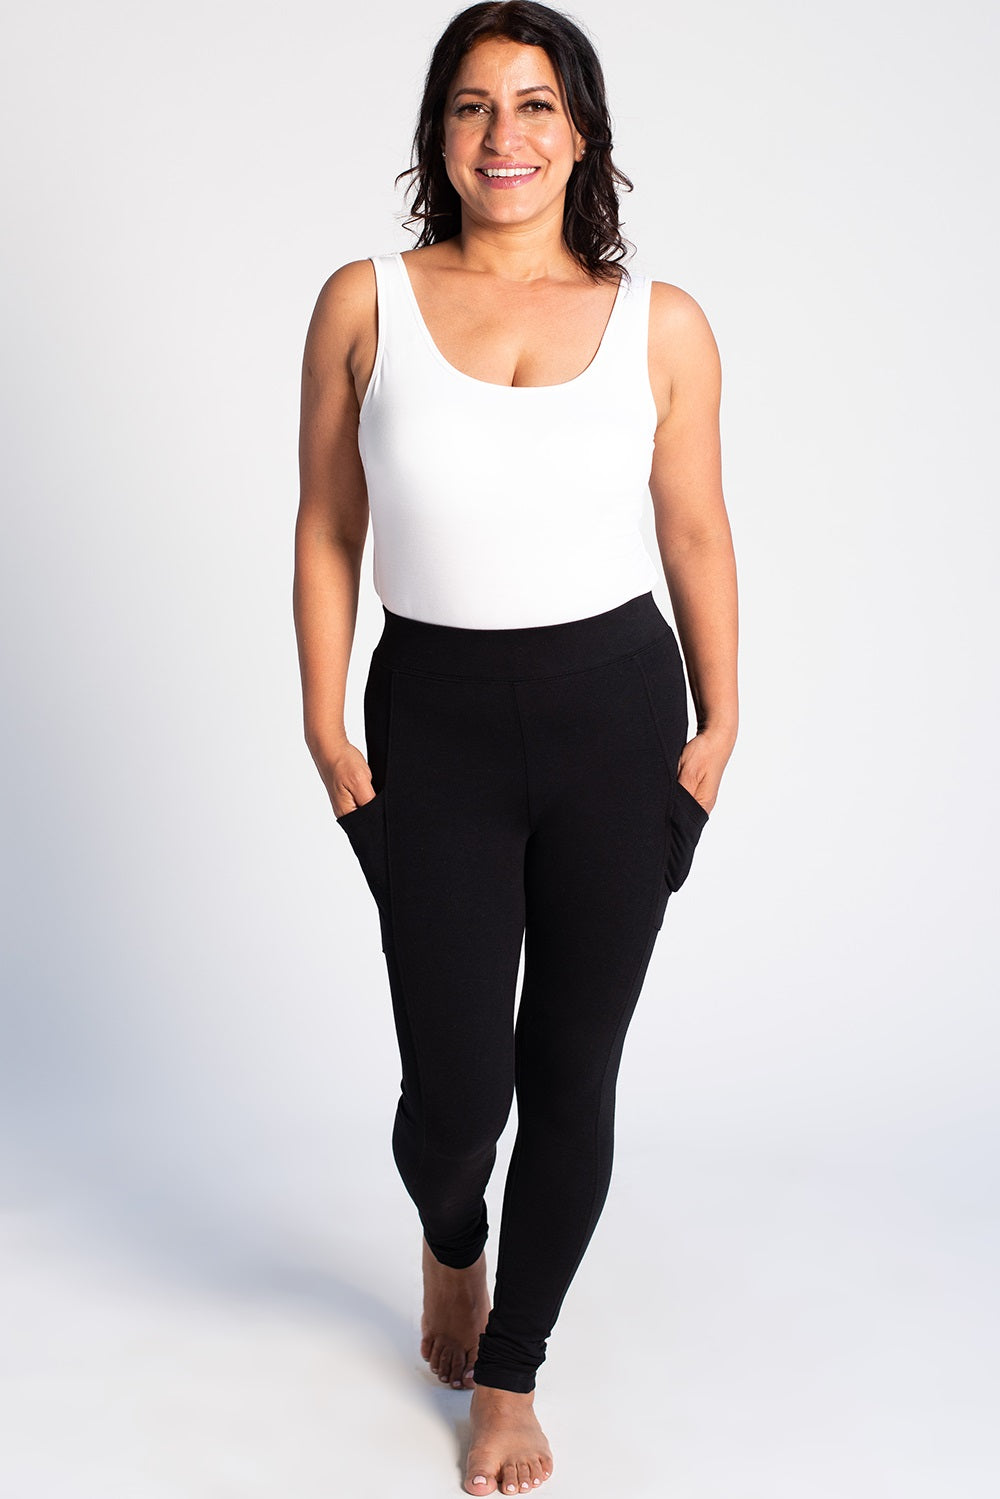 Leggings with pockets? Yes, please! Smooth, sleek and with the perfect stretch, the Viva Pocket Legging will give you the confidence you never knew you had. Fabrication: French Terry - 95% Viscose from Bamboo 5% Spandex Terrera Colour Black $65.00